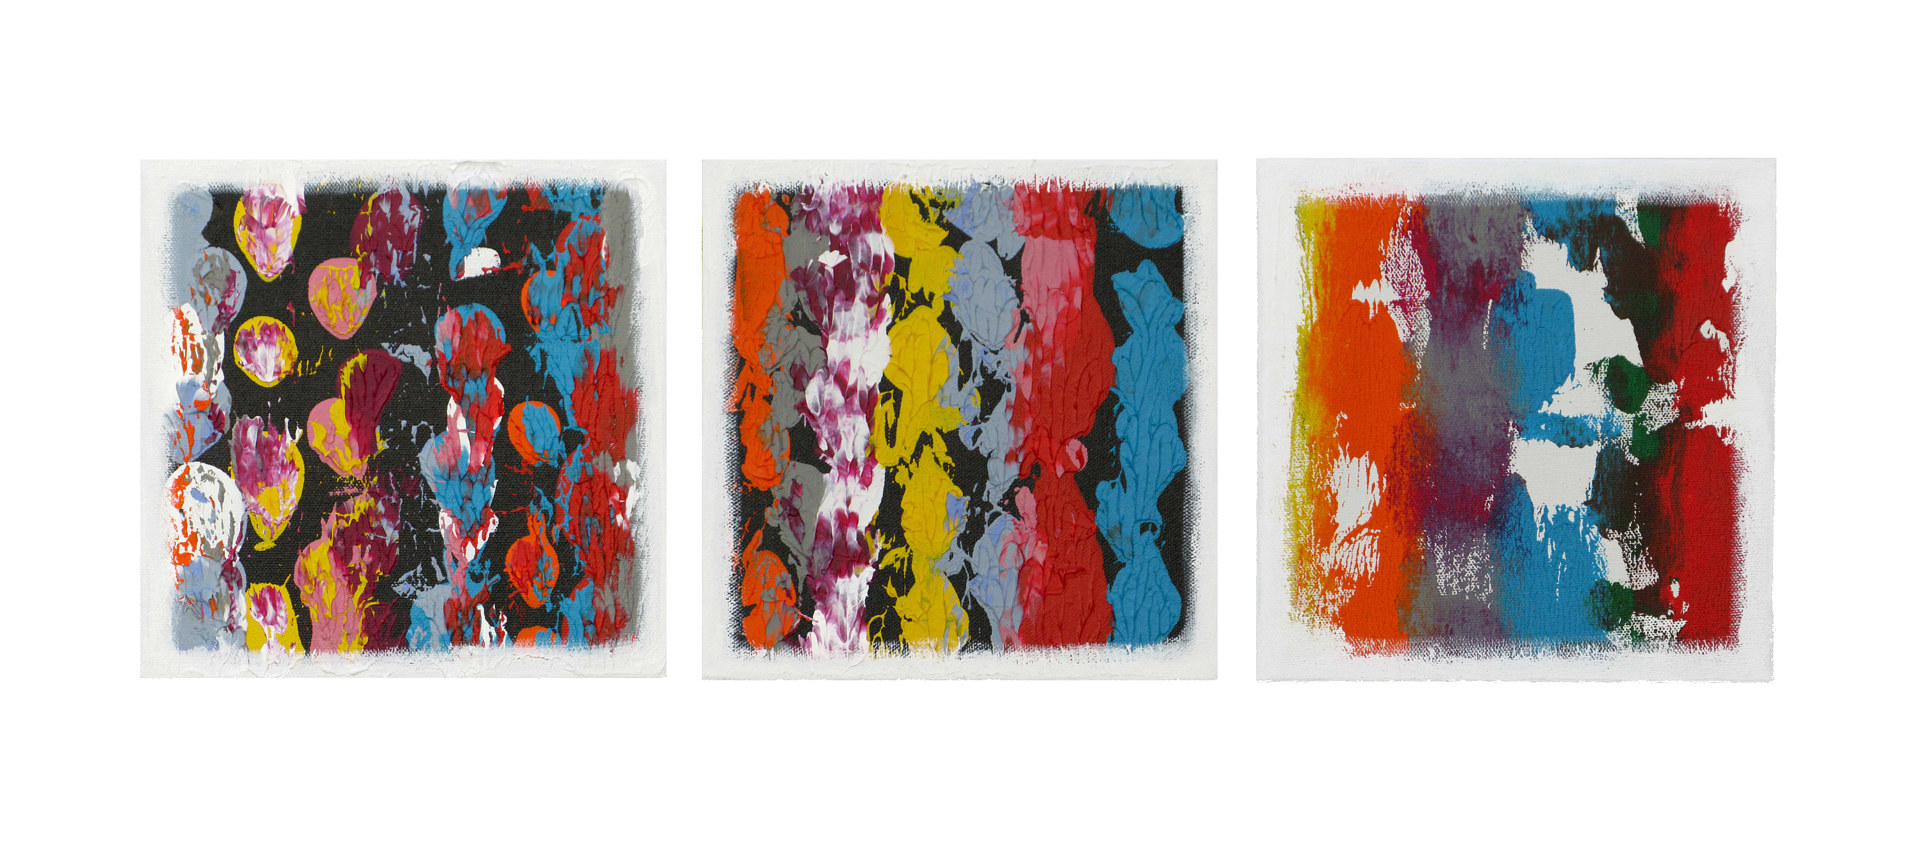 Acrylic painting Color Storm Views II, 8x8 inches each by Hooshang Khorasani